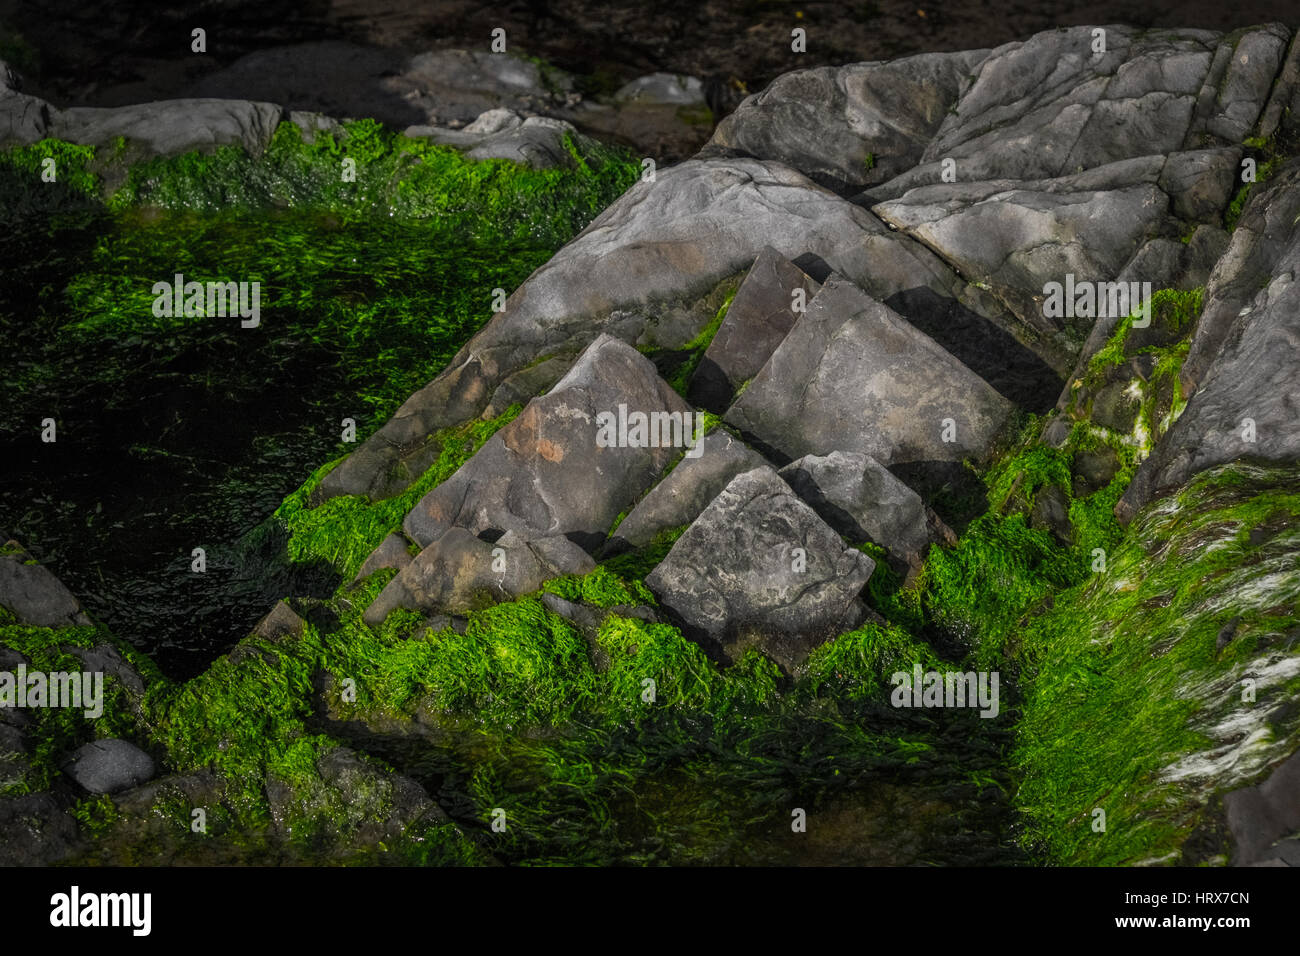 Rock formations - Stock Image